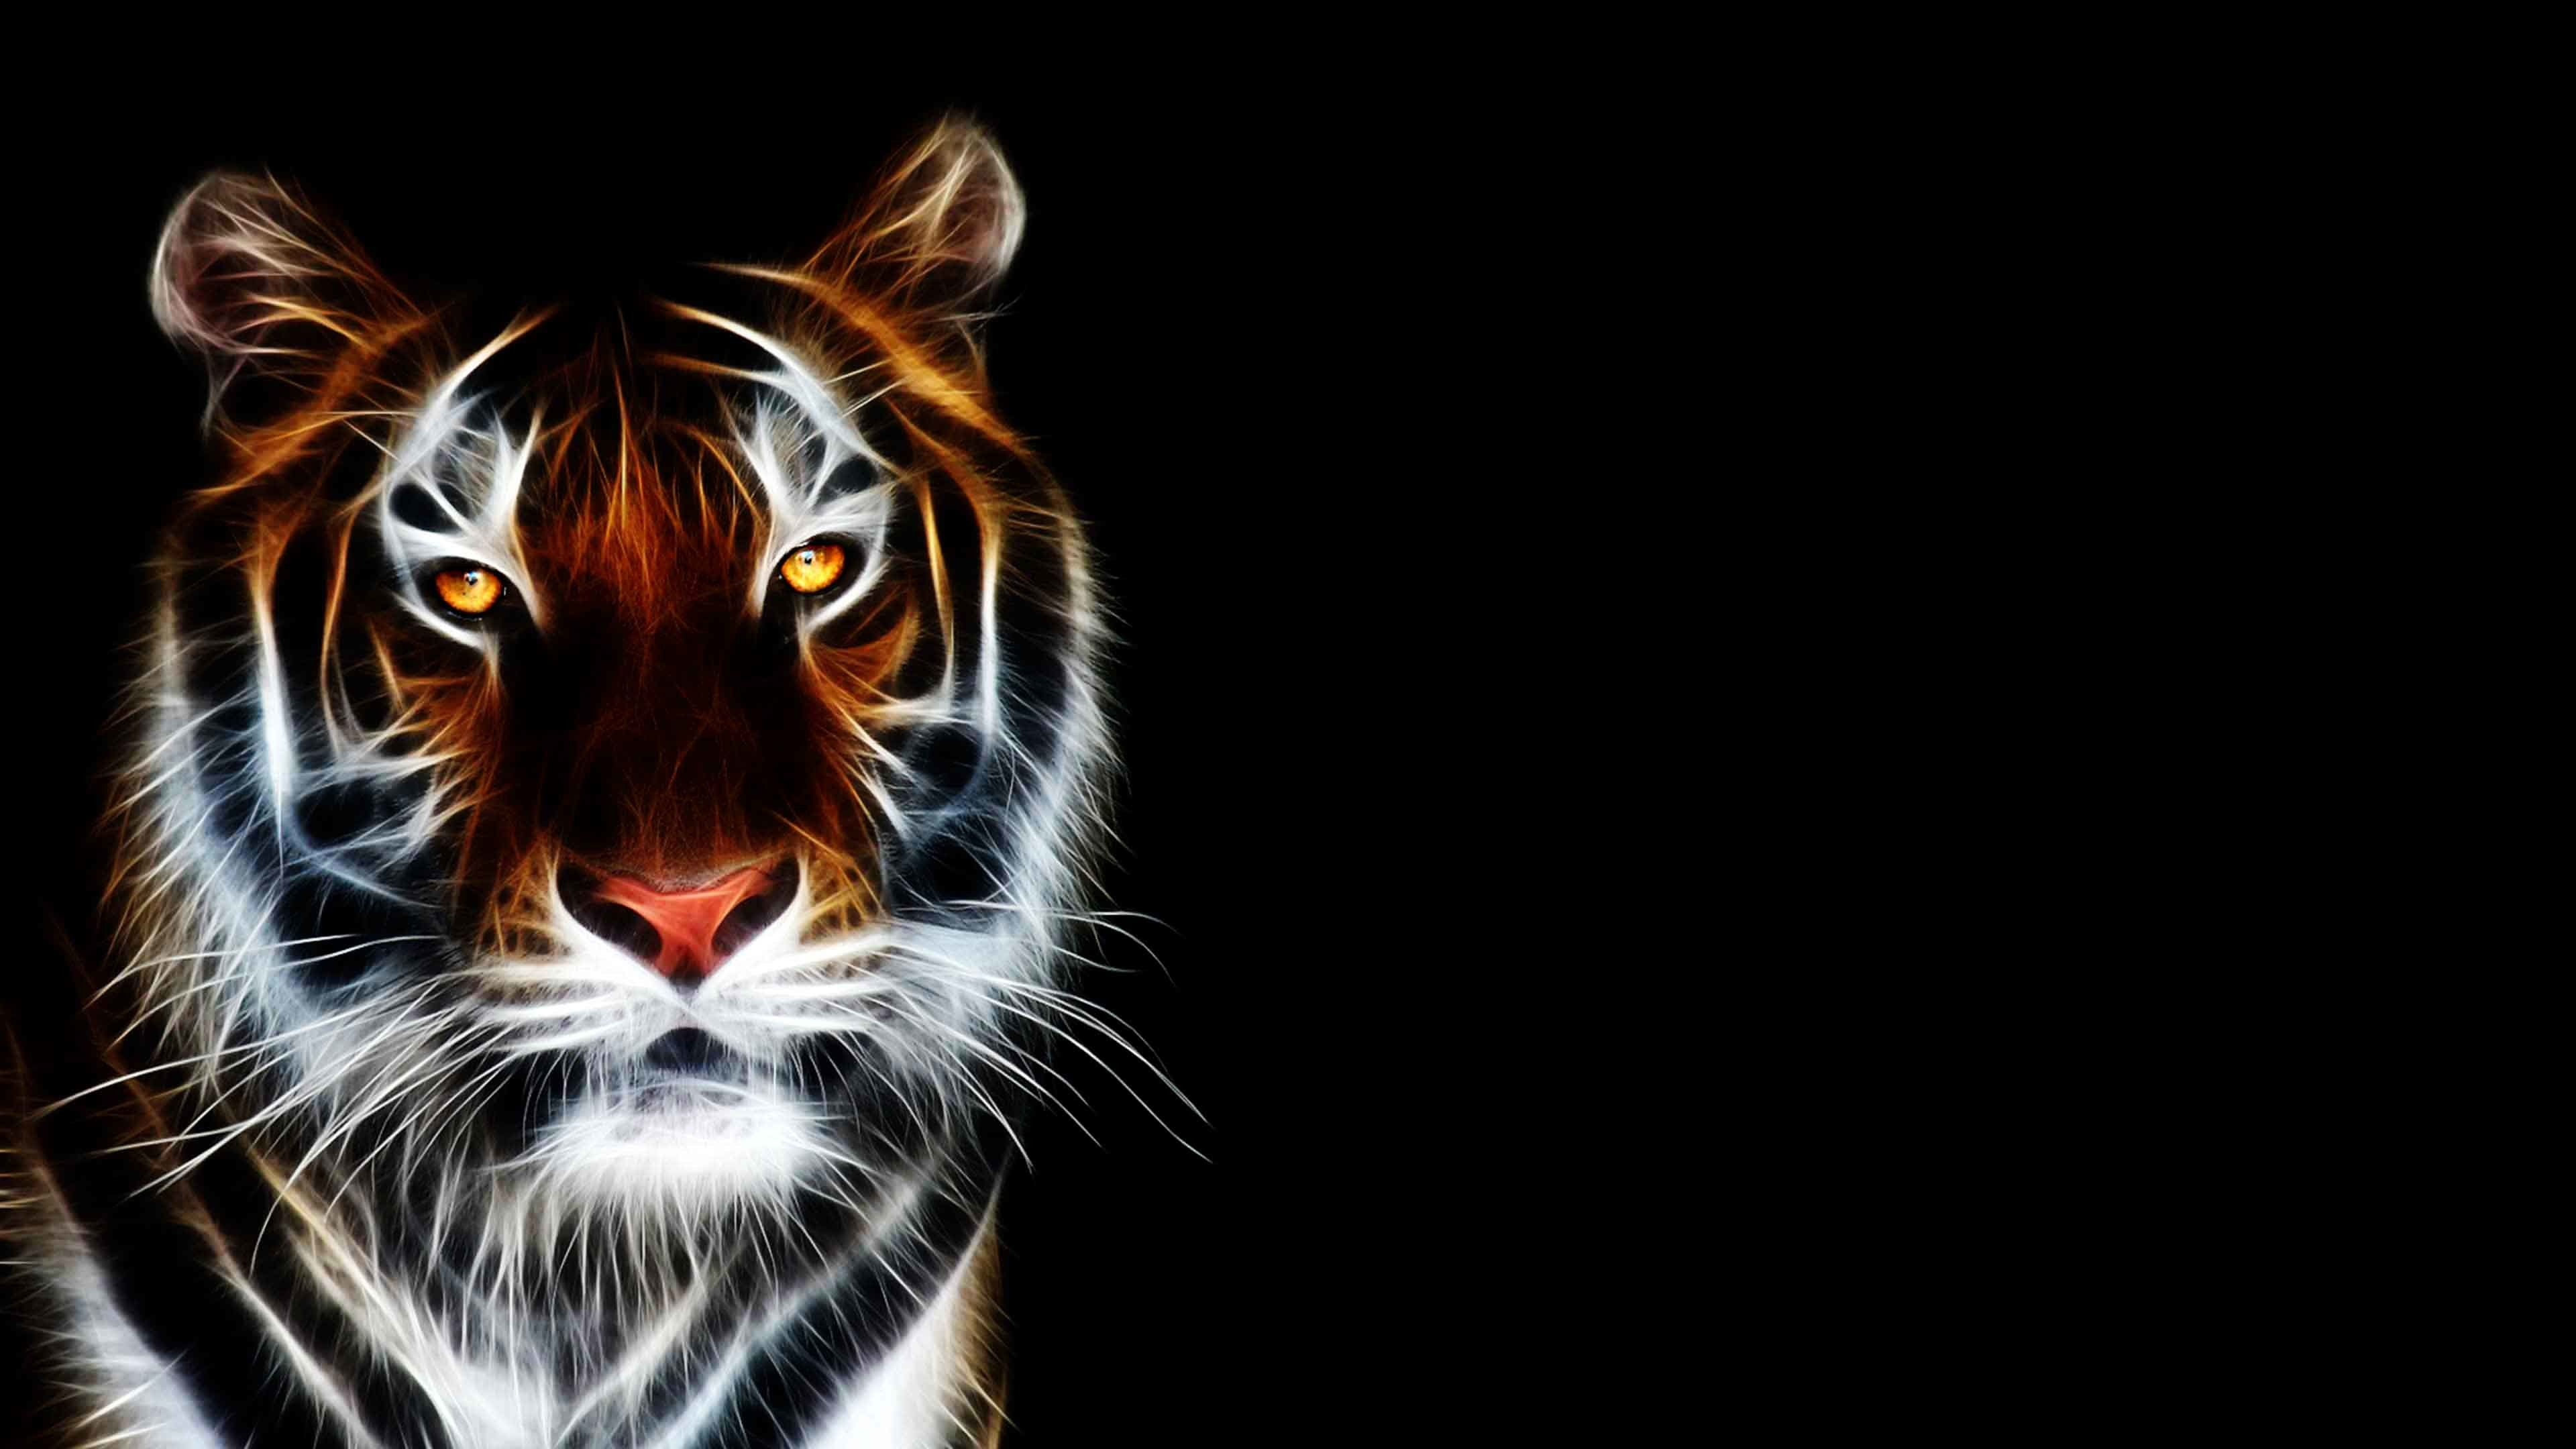 23 Best Free Trippy Tiger Wallpapers Wallpaperaccess